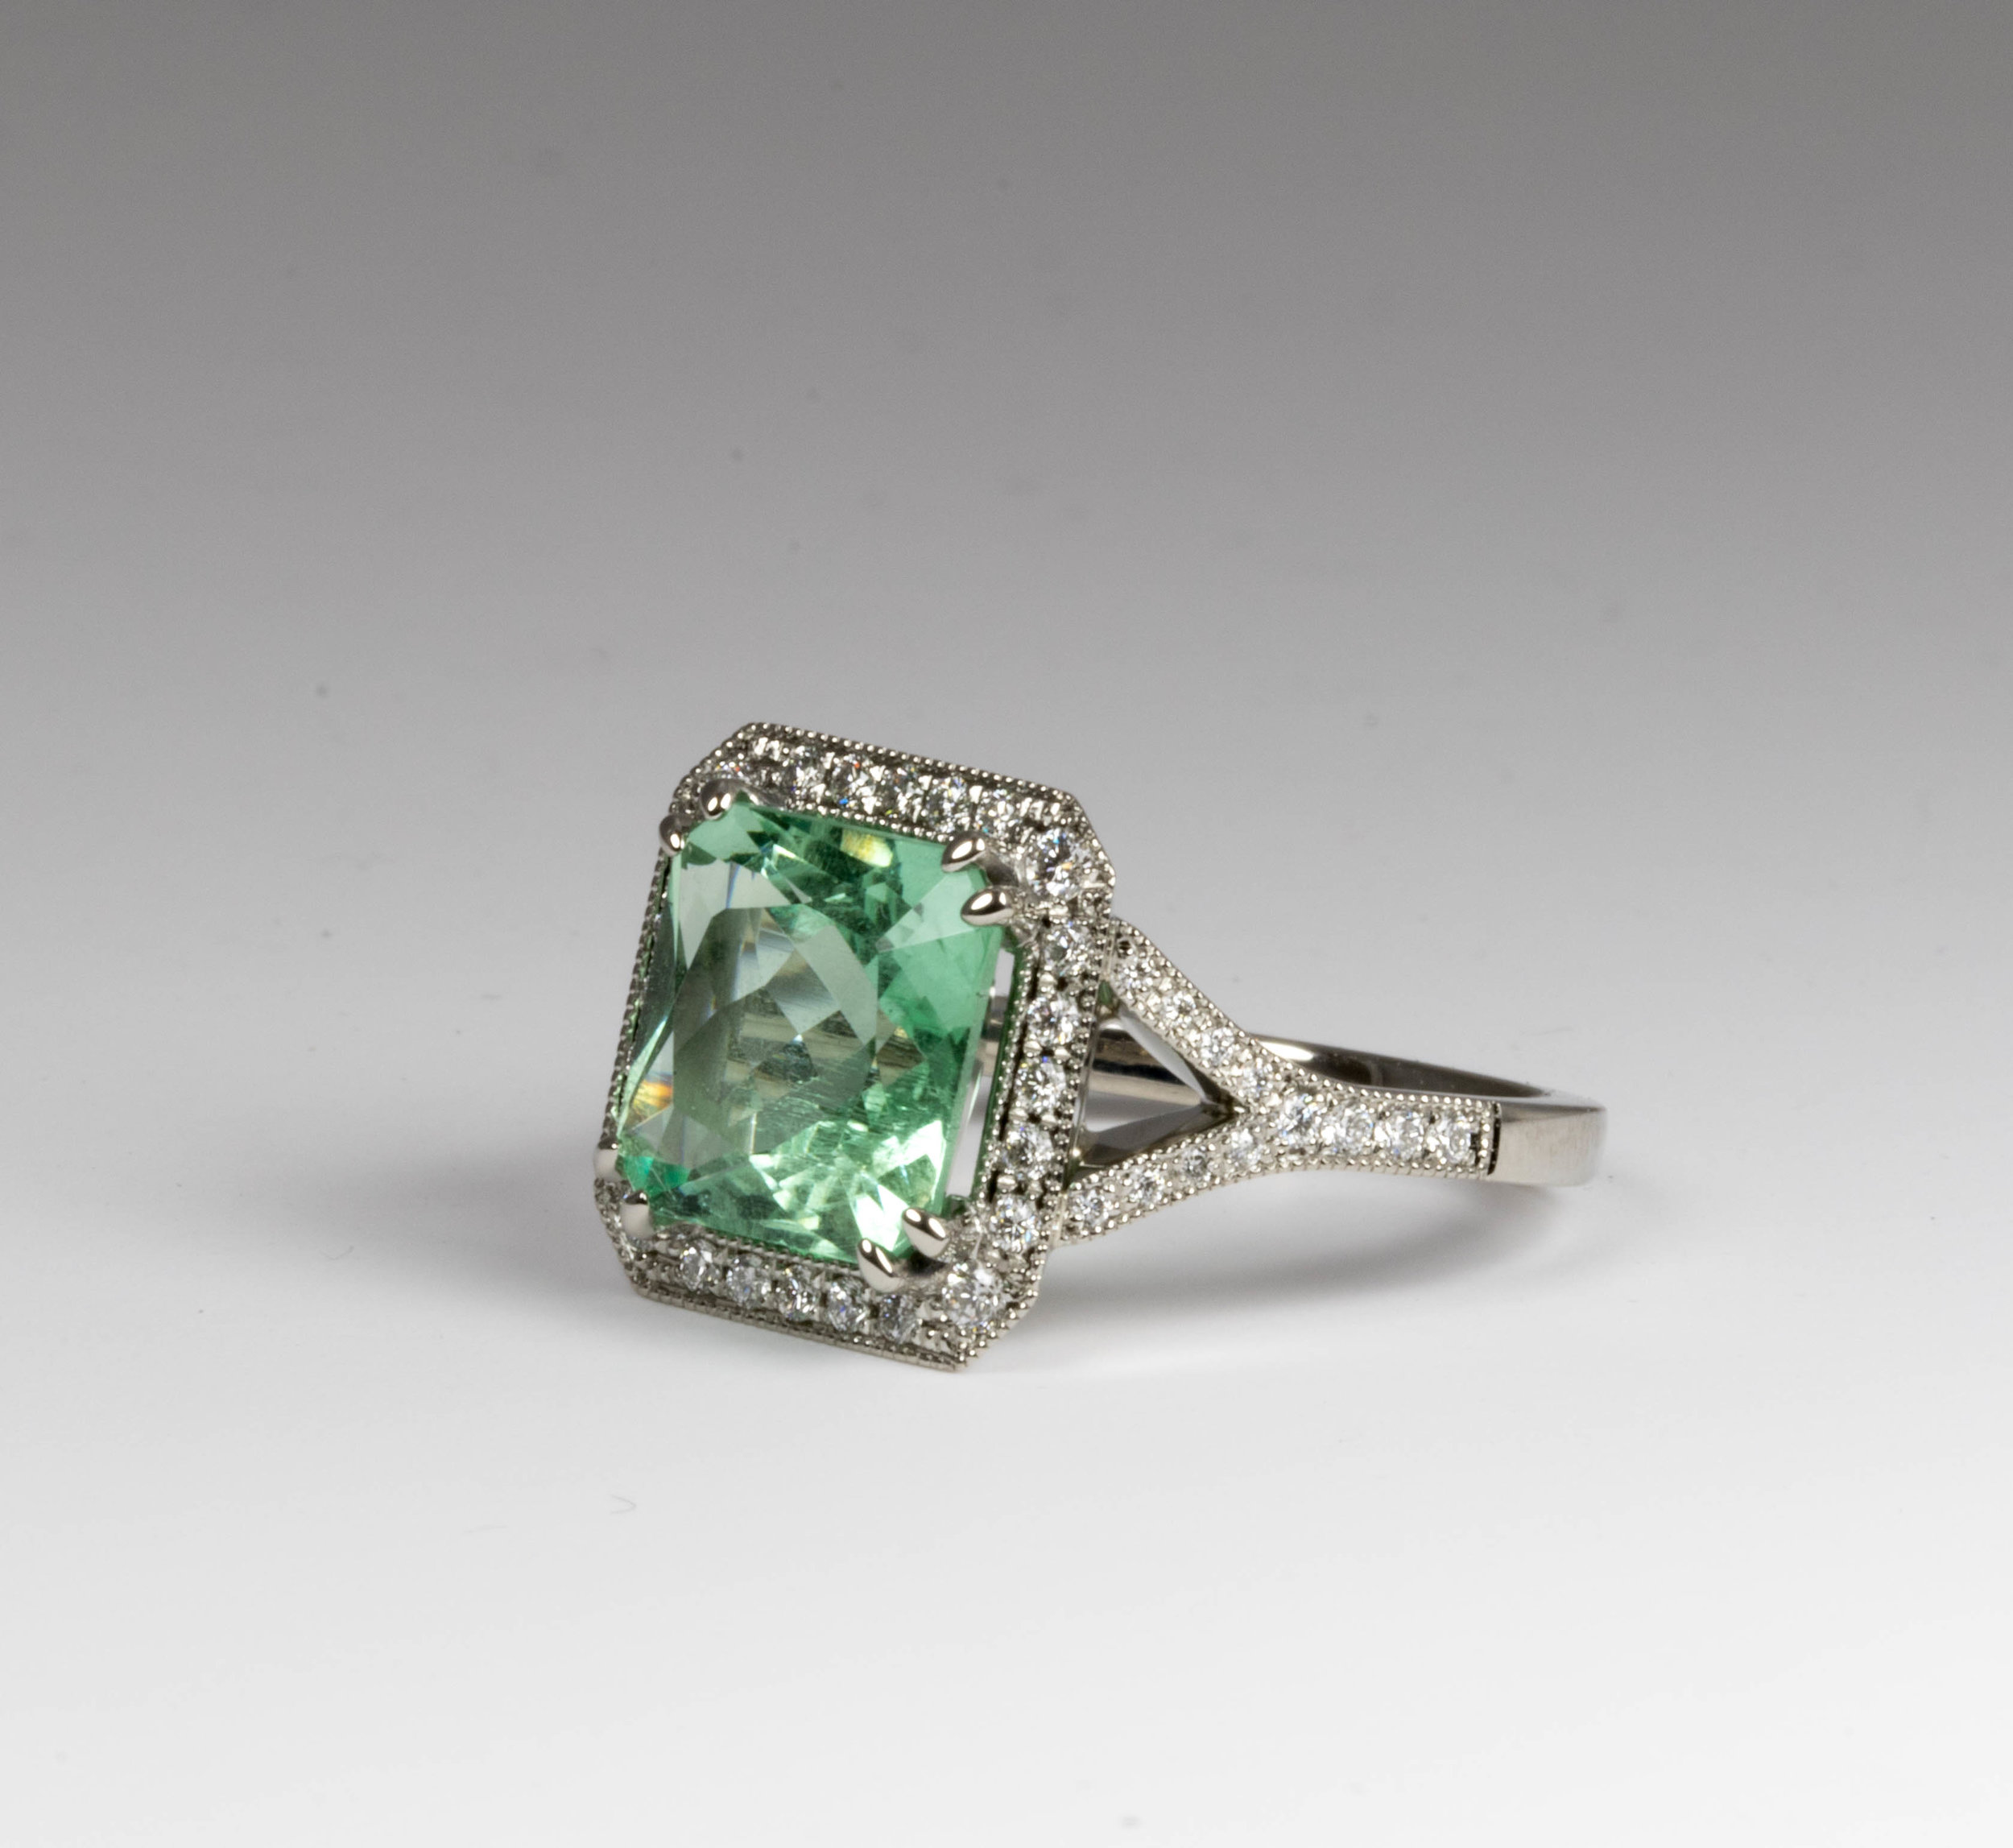 Green/blue aquamarine (Beryl) and diamond ring. Made in Chichester, England.